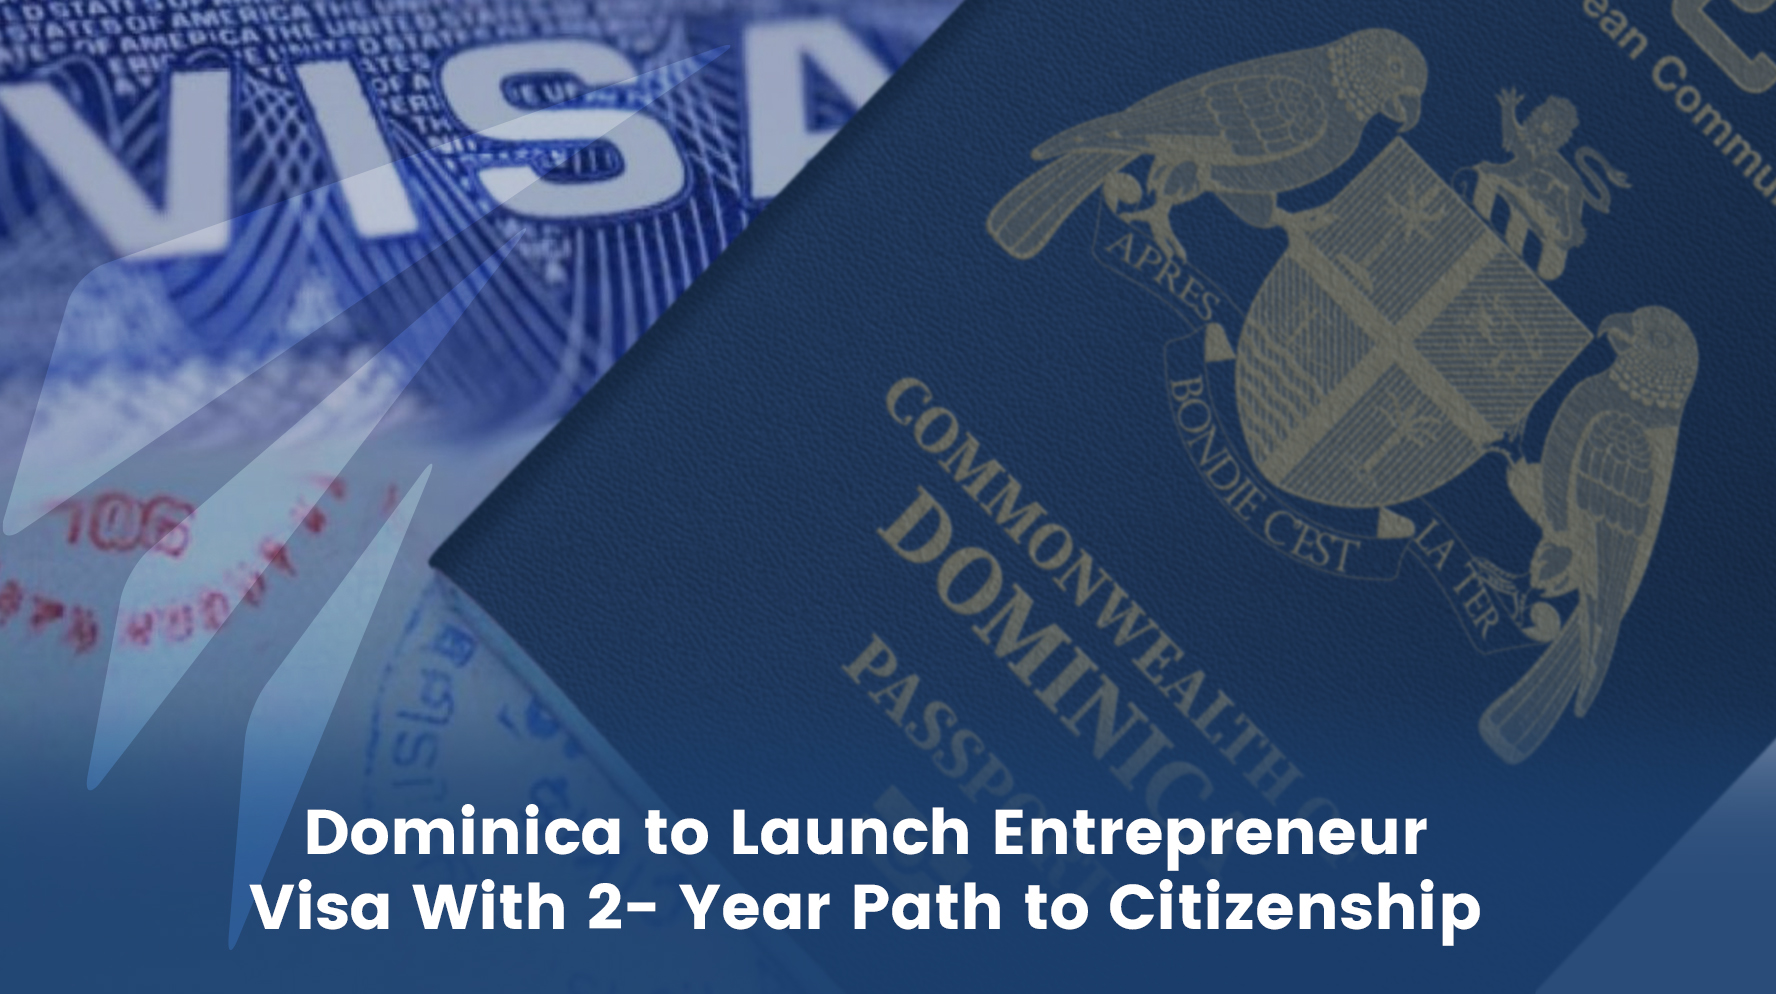 Dominica to Launch Entrepreneur Visa With 2-Year Path to Citizenship